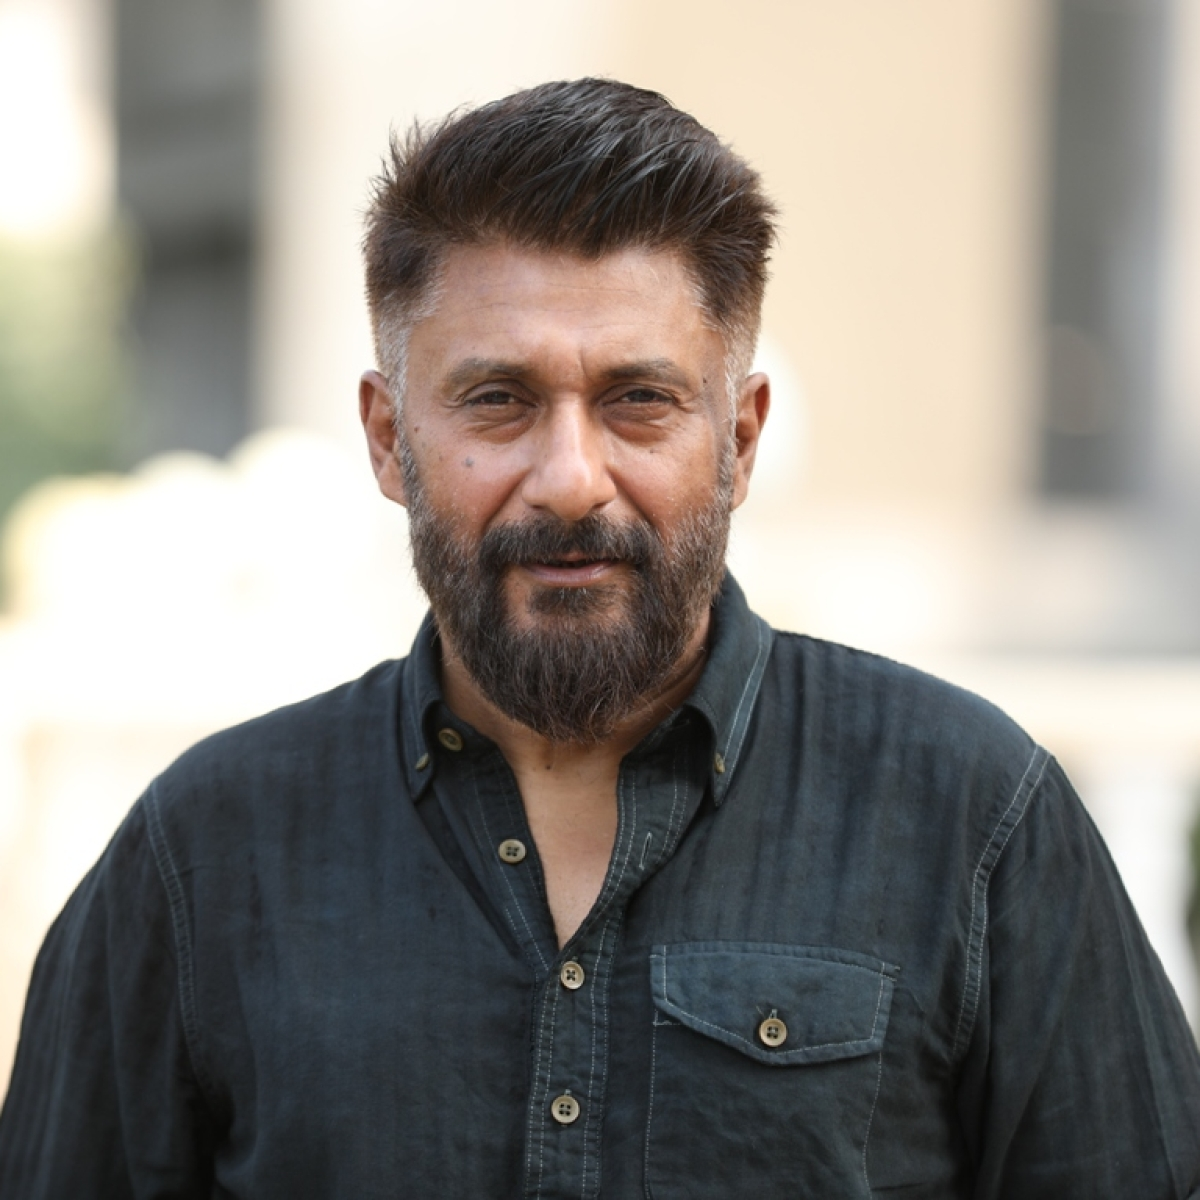 Pallavi and I are married but we are still very individualistic: Director Vivek Agnihotri